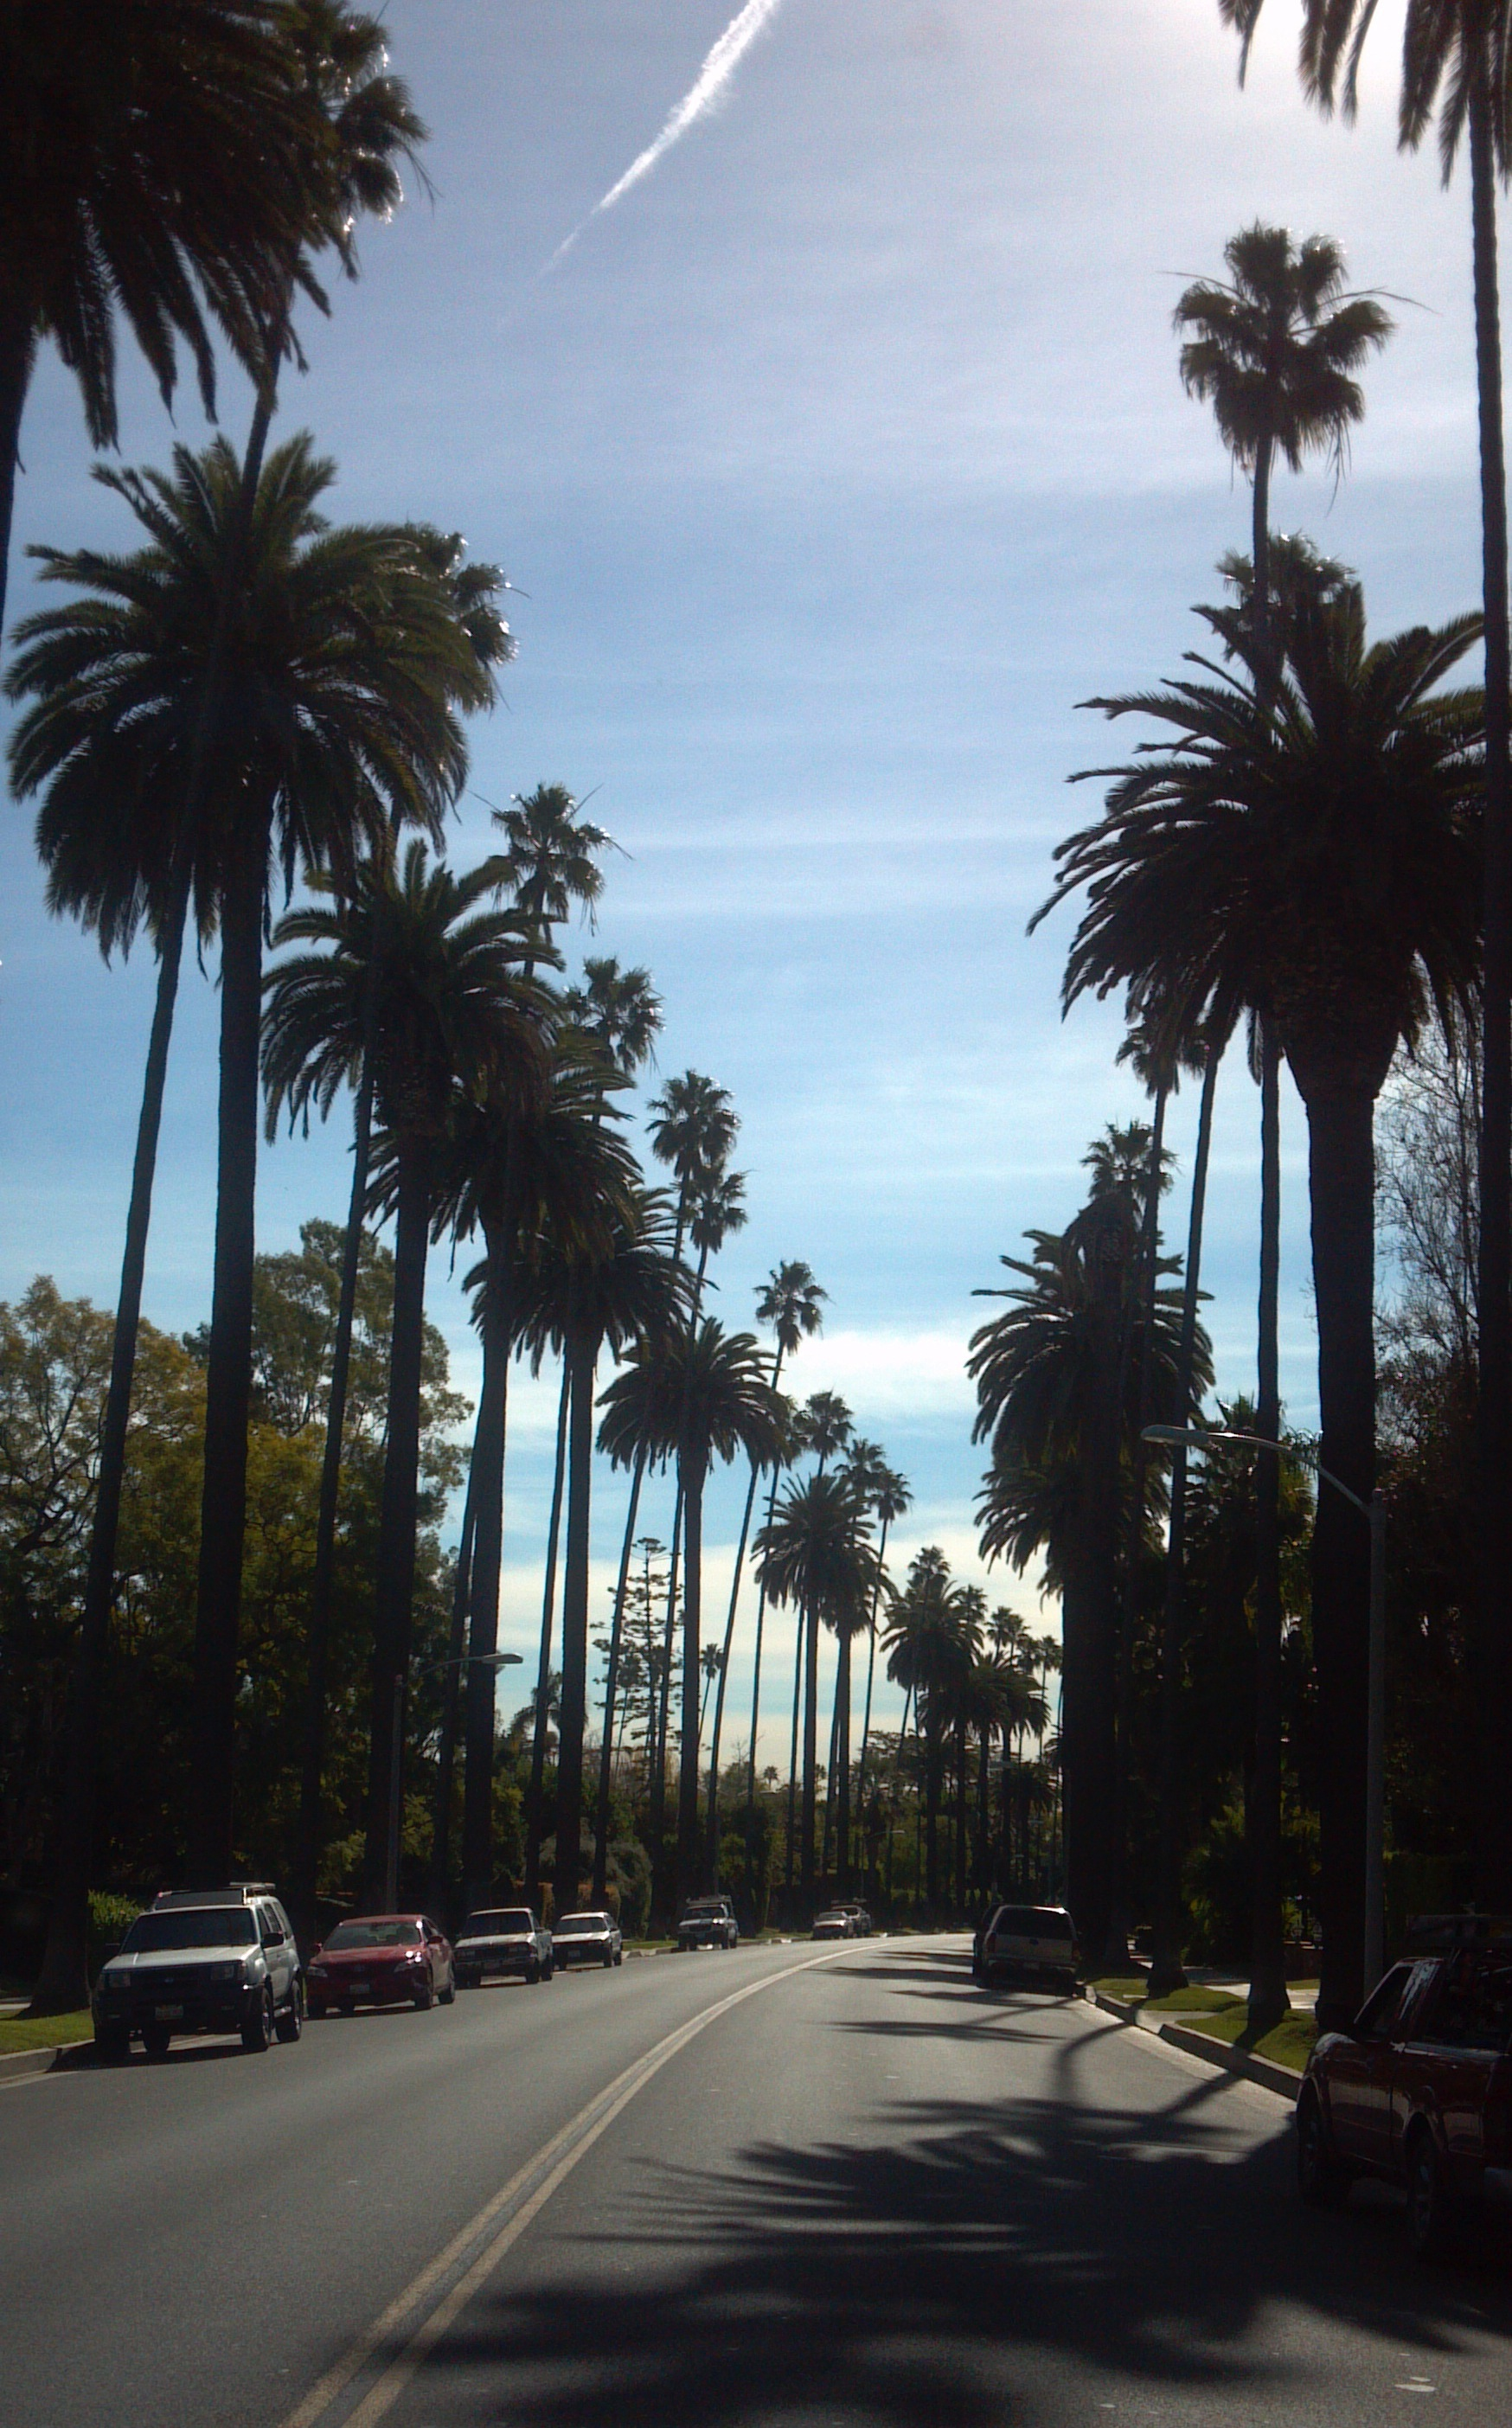 Sightseeing tours of Los Angeles